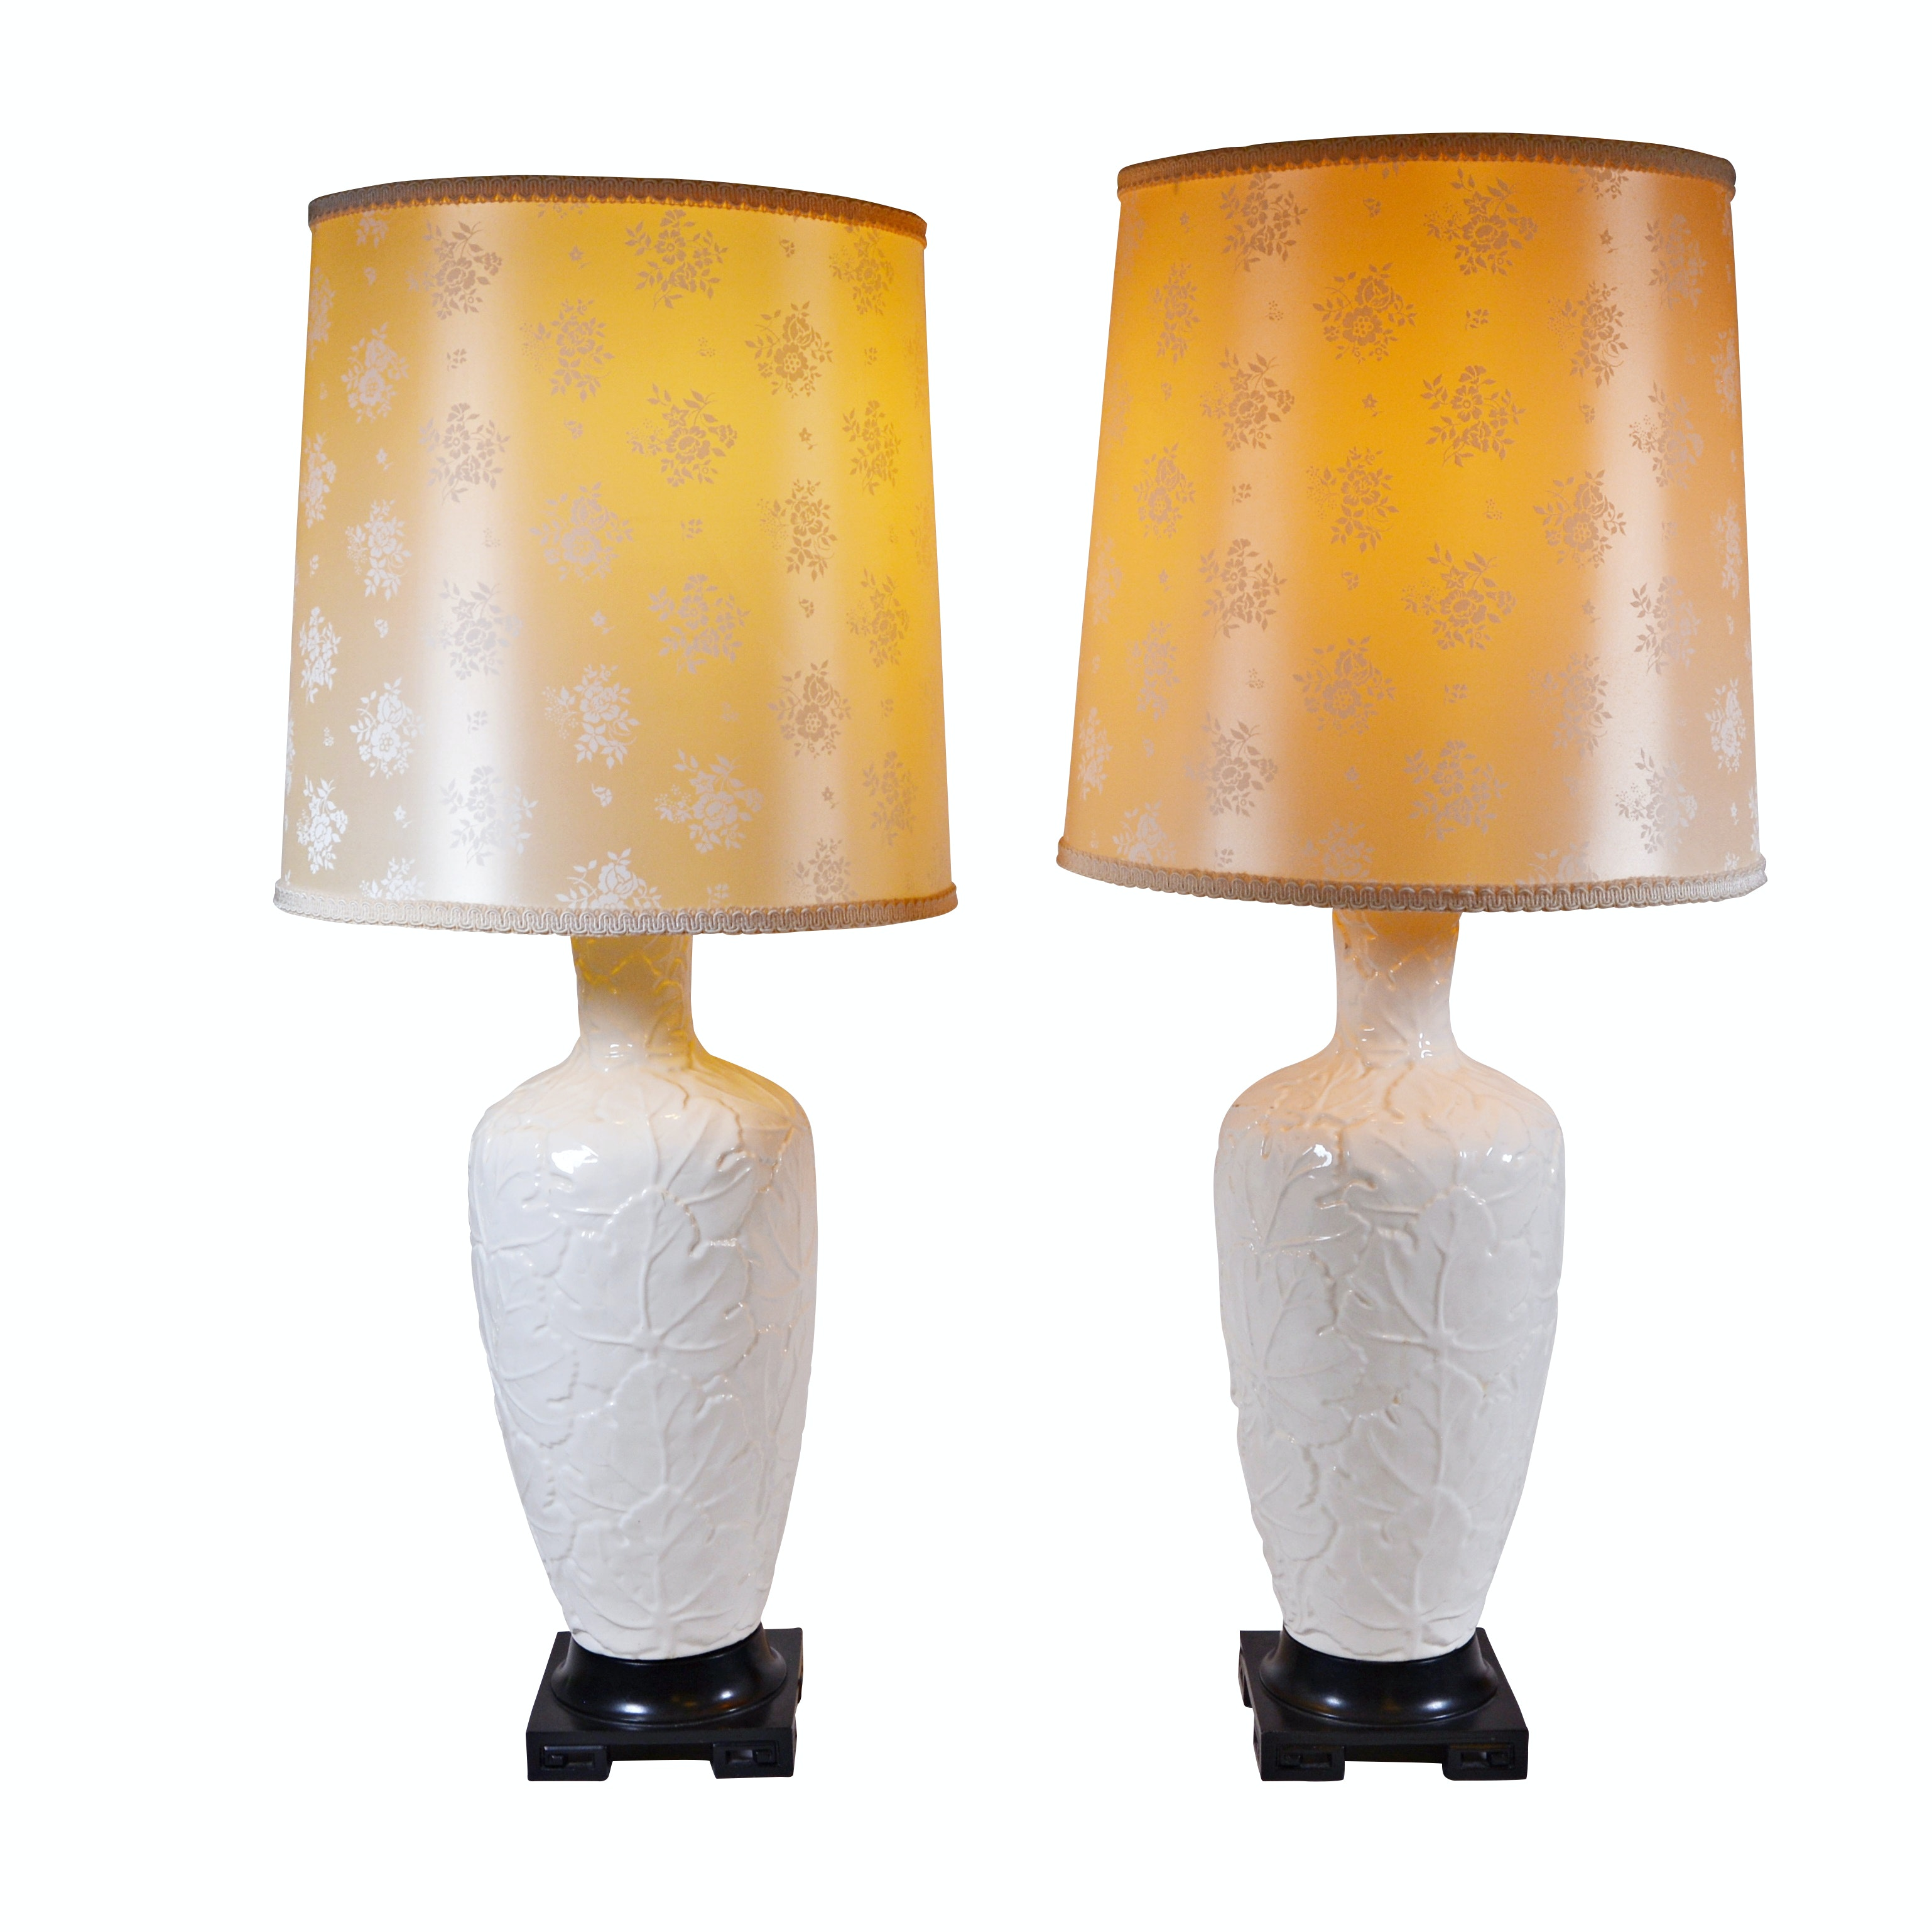 Embossed Leaf Porcelain Table Lamps with Shades